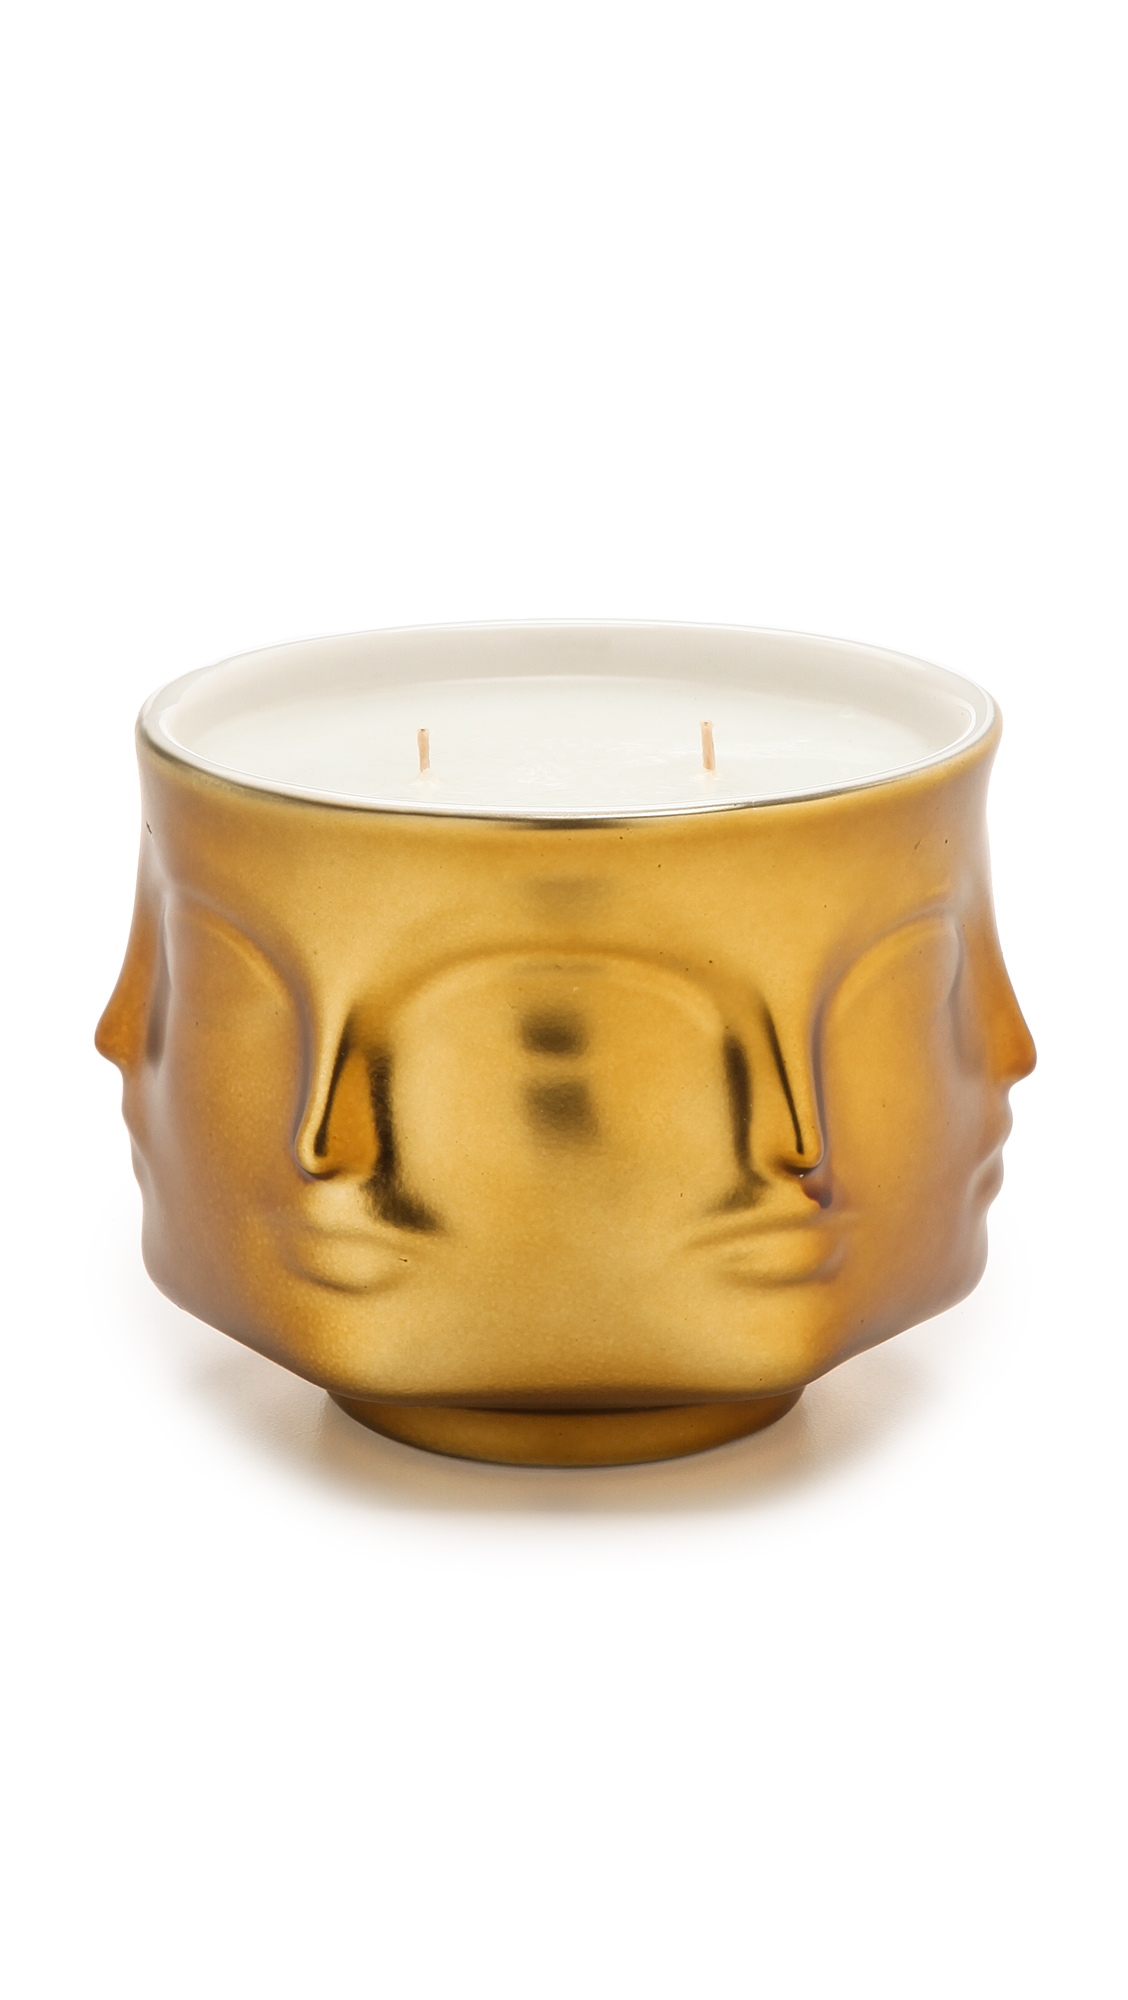 Jonathan Adler Muse dOr Candle - Gold